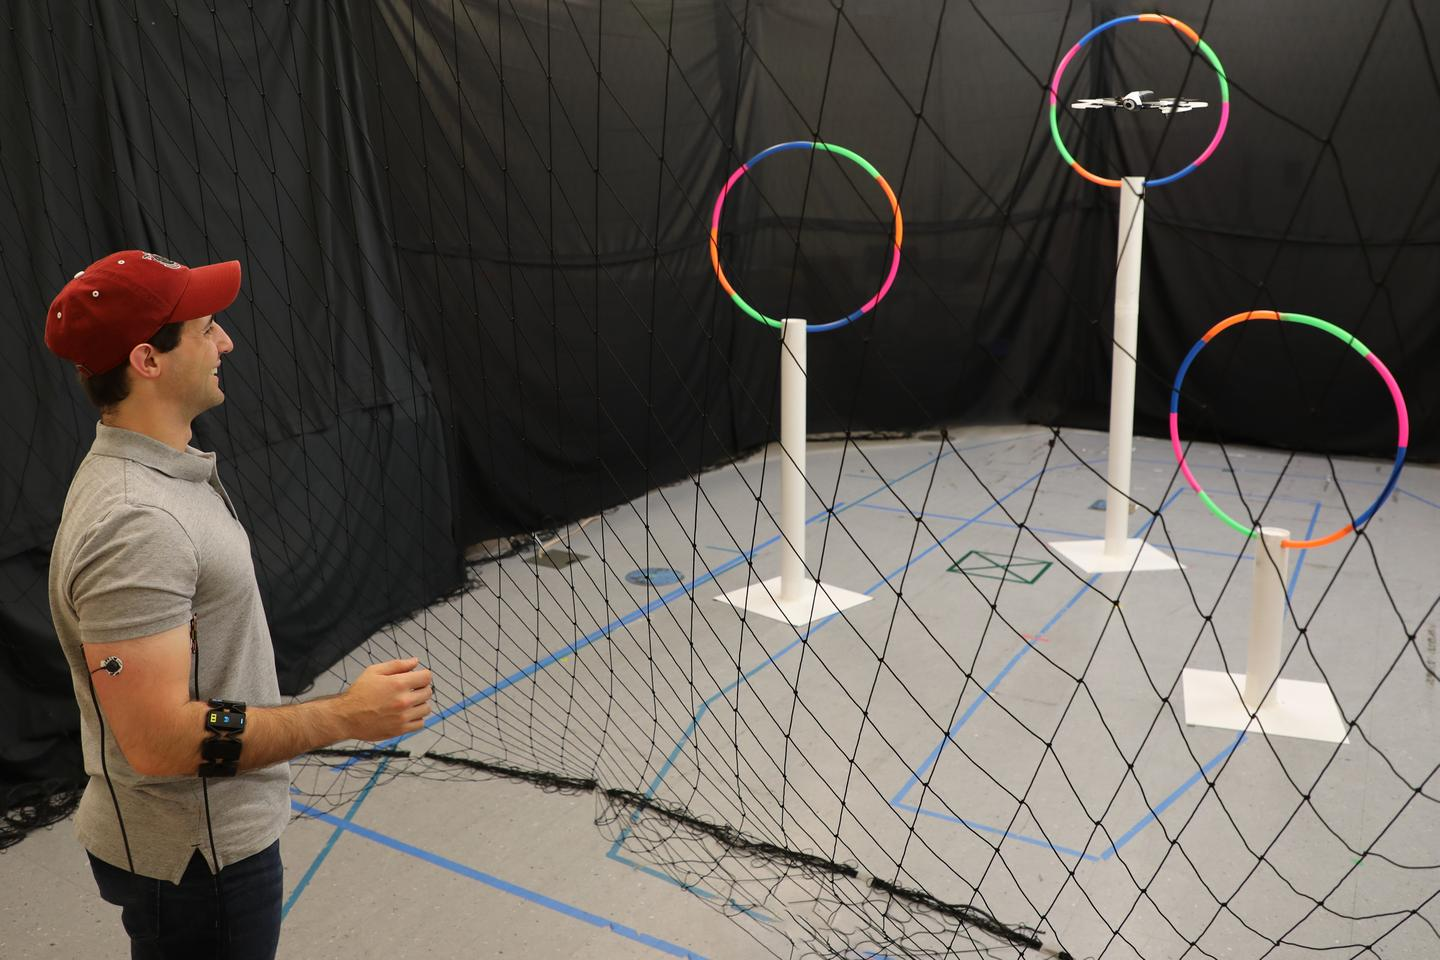 Lead author Joseph DelPreto uses the Conduct-A-Bot system to guide a drone through hoops